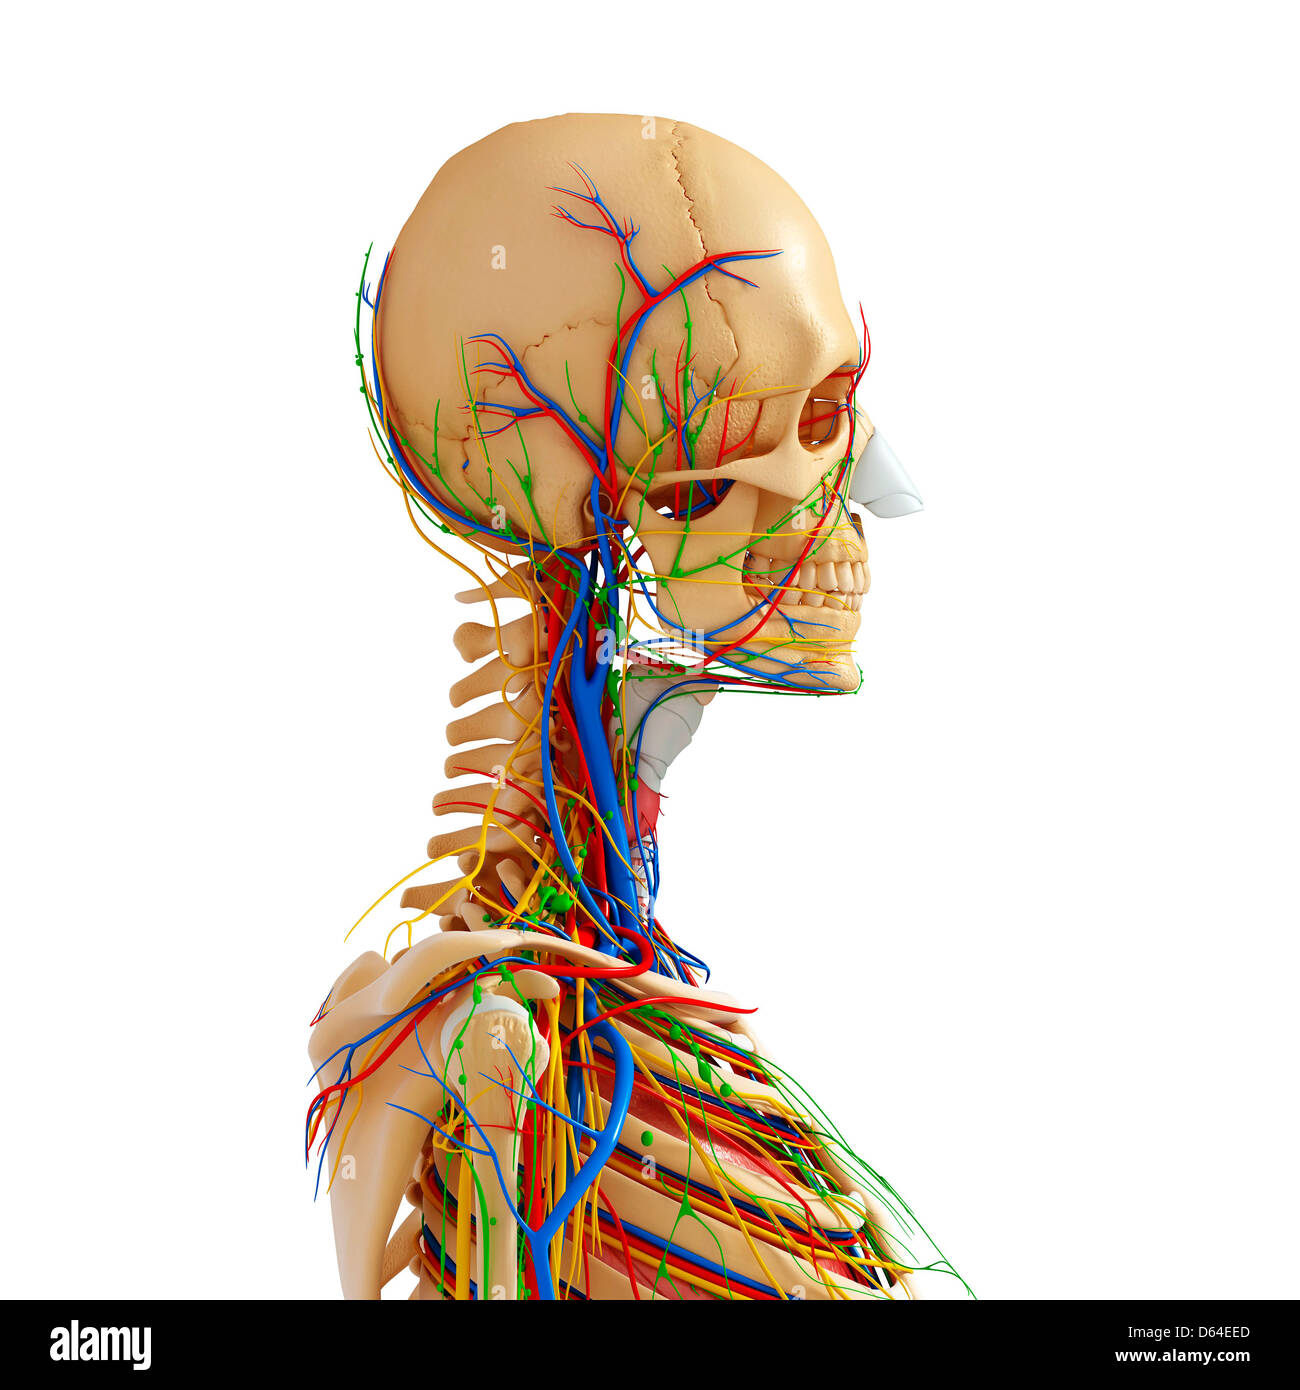 Upper Body Nerve Supply Stock Photos & Upper Body Nerve Supply Stock ...